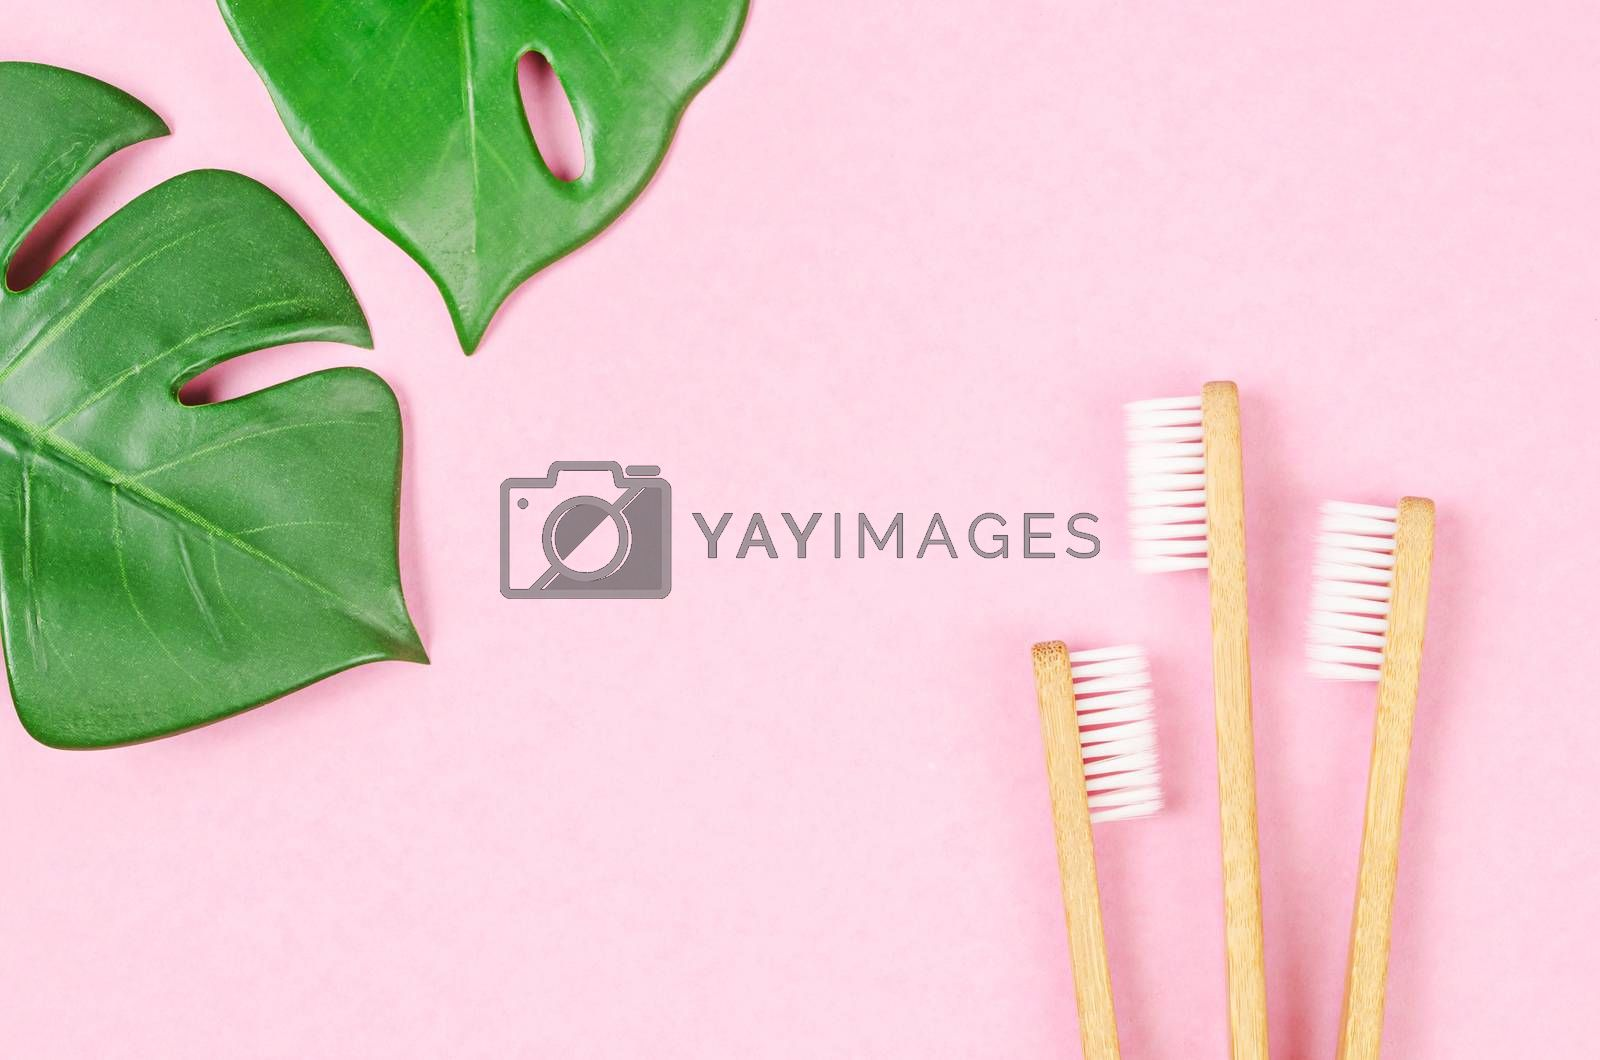 Bamboo toothbrushes and green leaves on pink background with free space for your text or message.